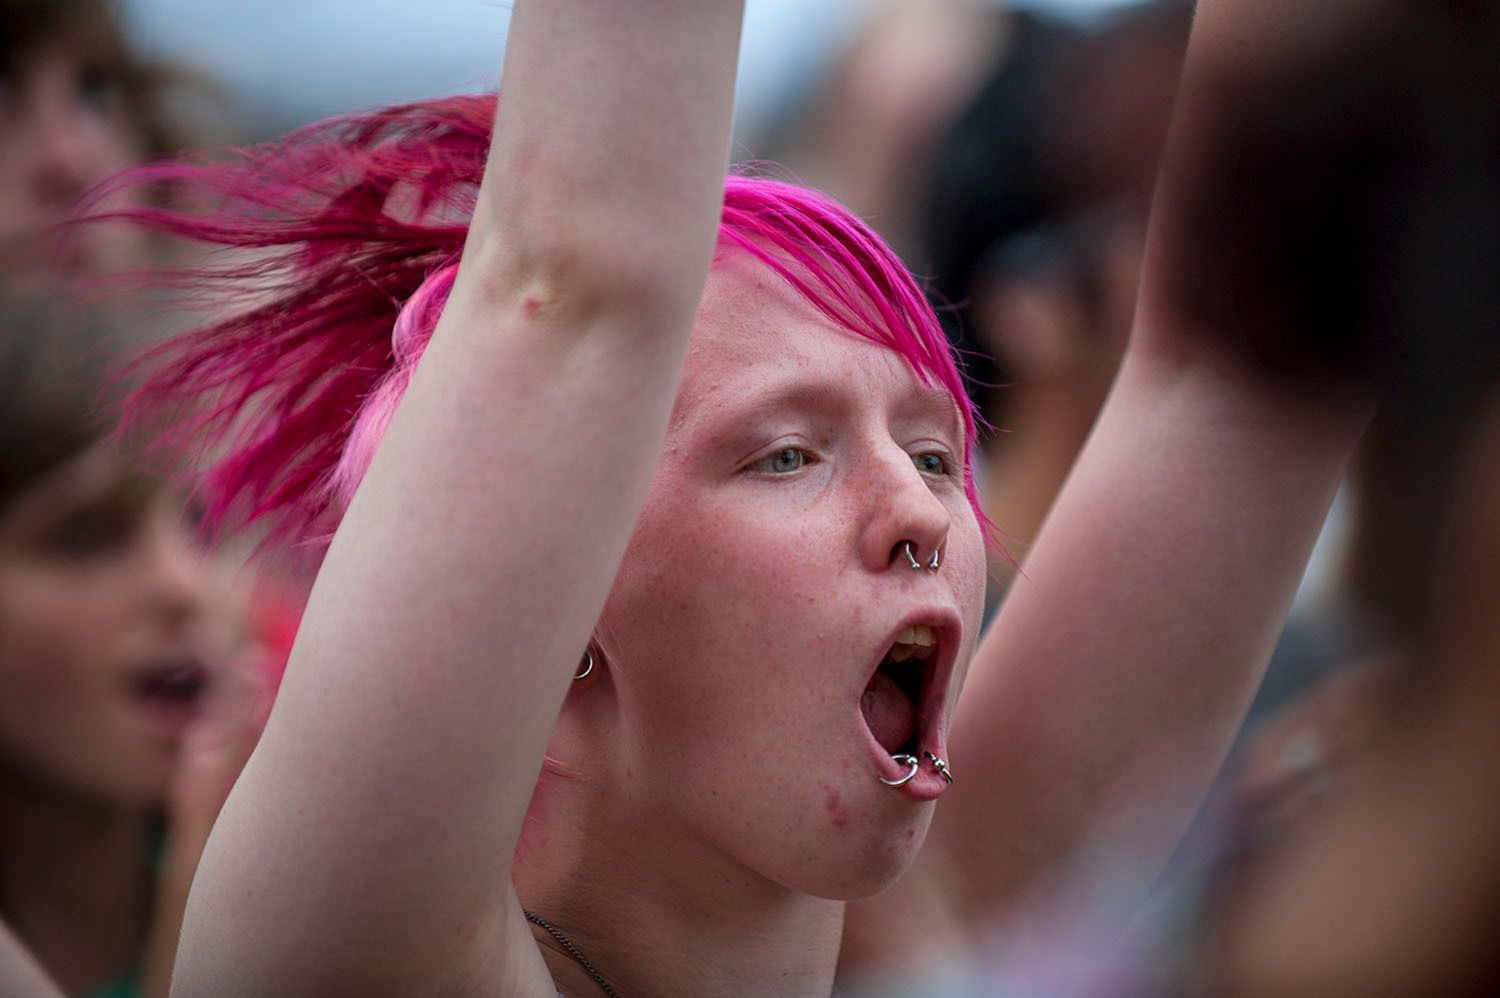 Woman with pink hair yelling